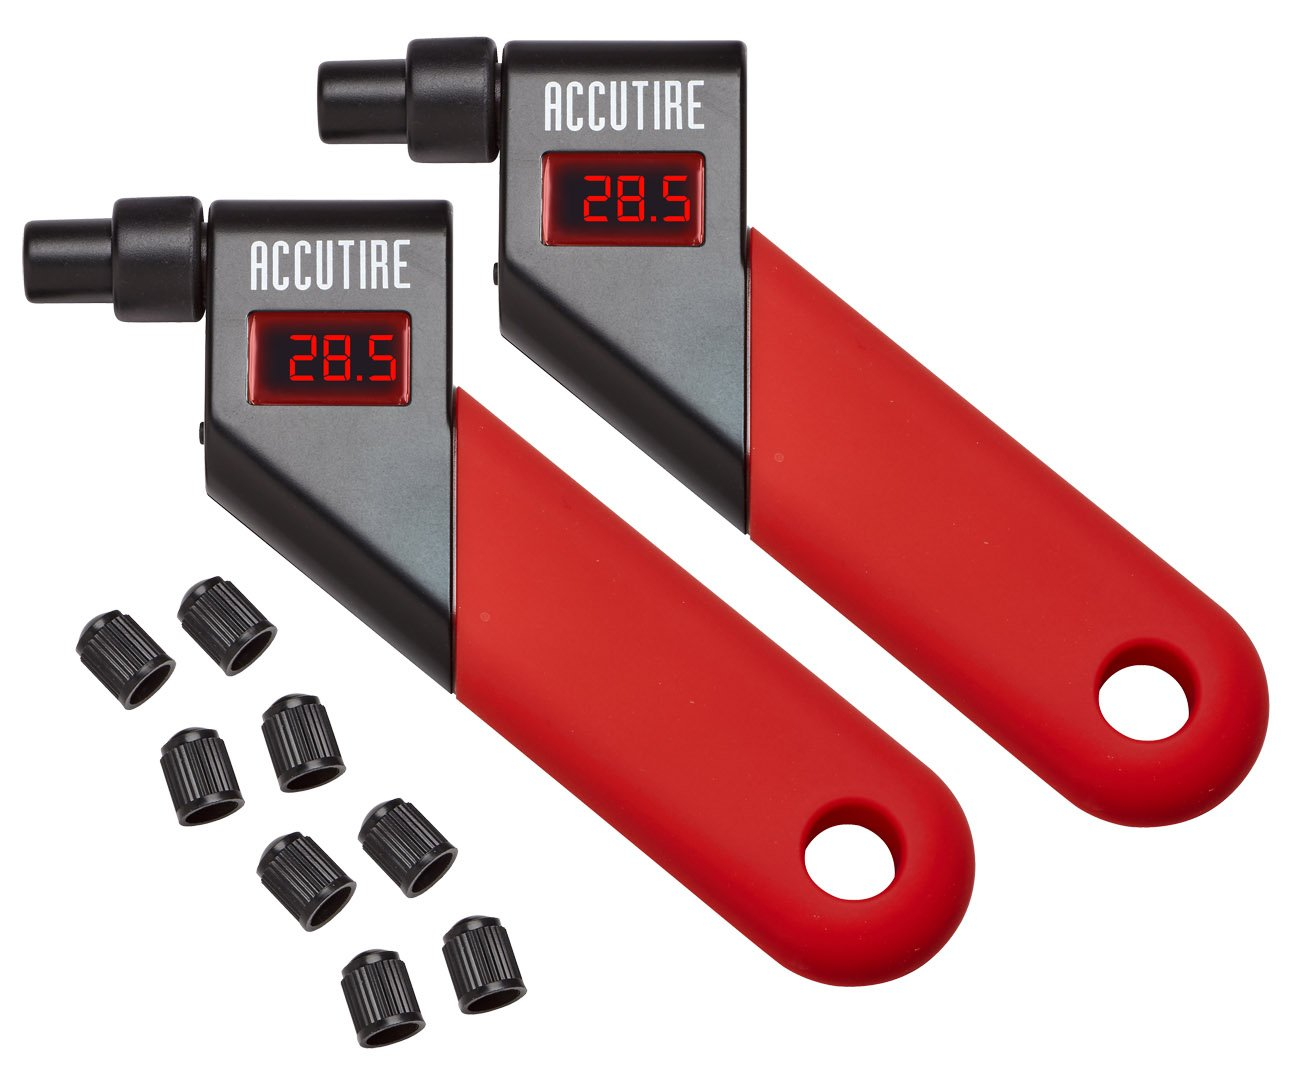 Accutire Measurement Ltd Ms-4021b Mechanics Digital Tire Gauge